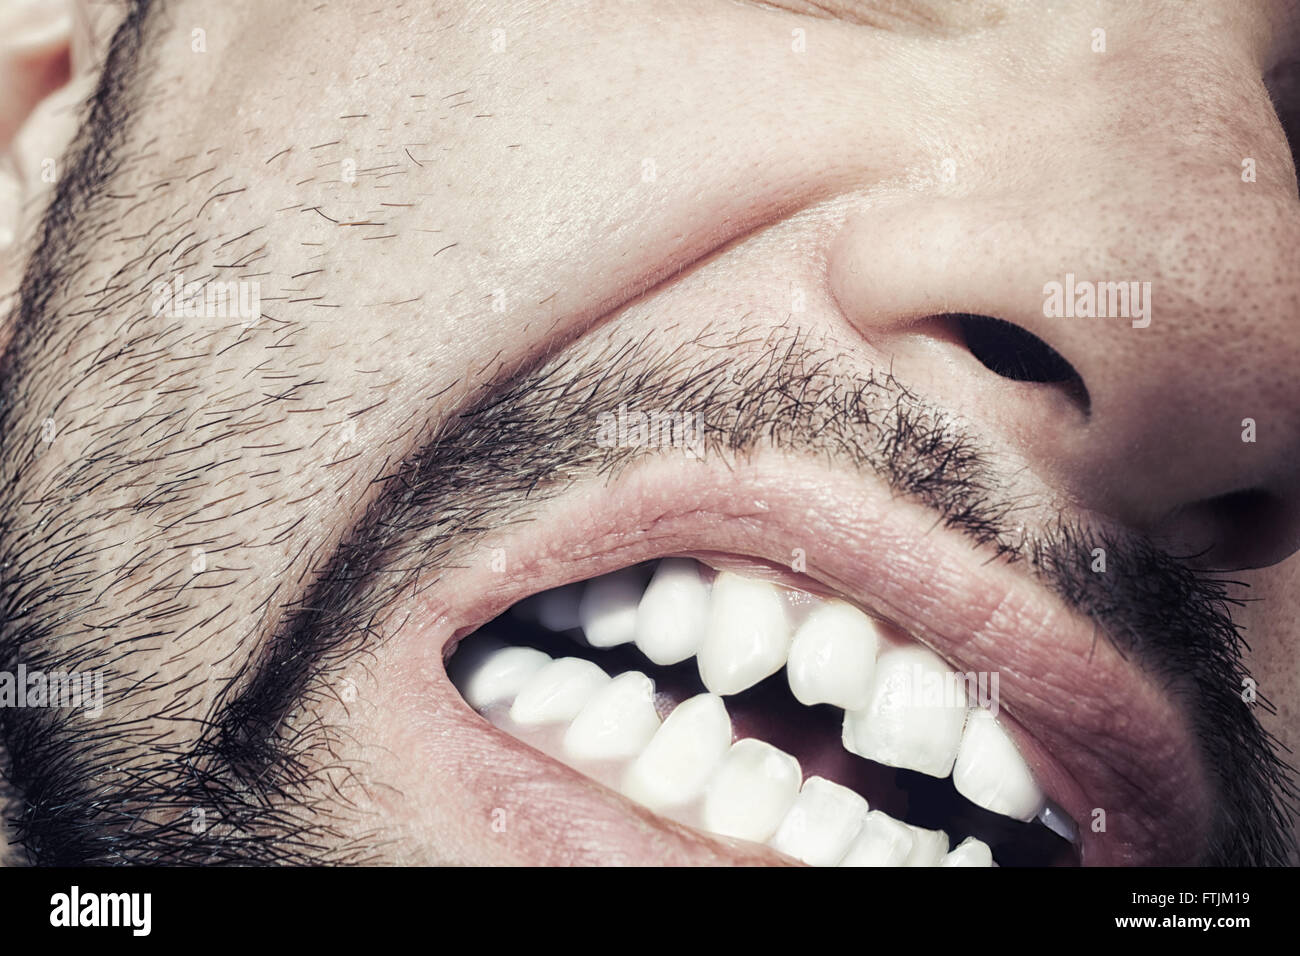 Male mouth with bared teeth close-up - Stock Image